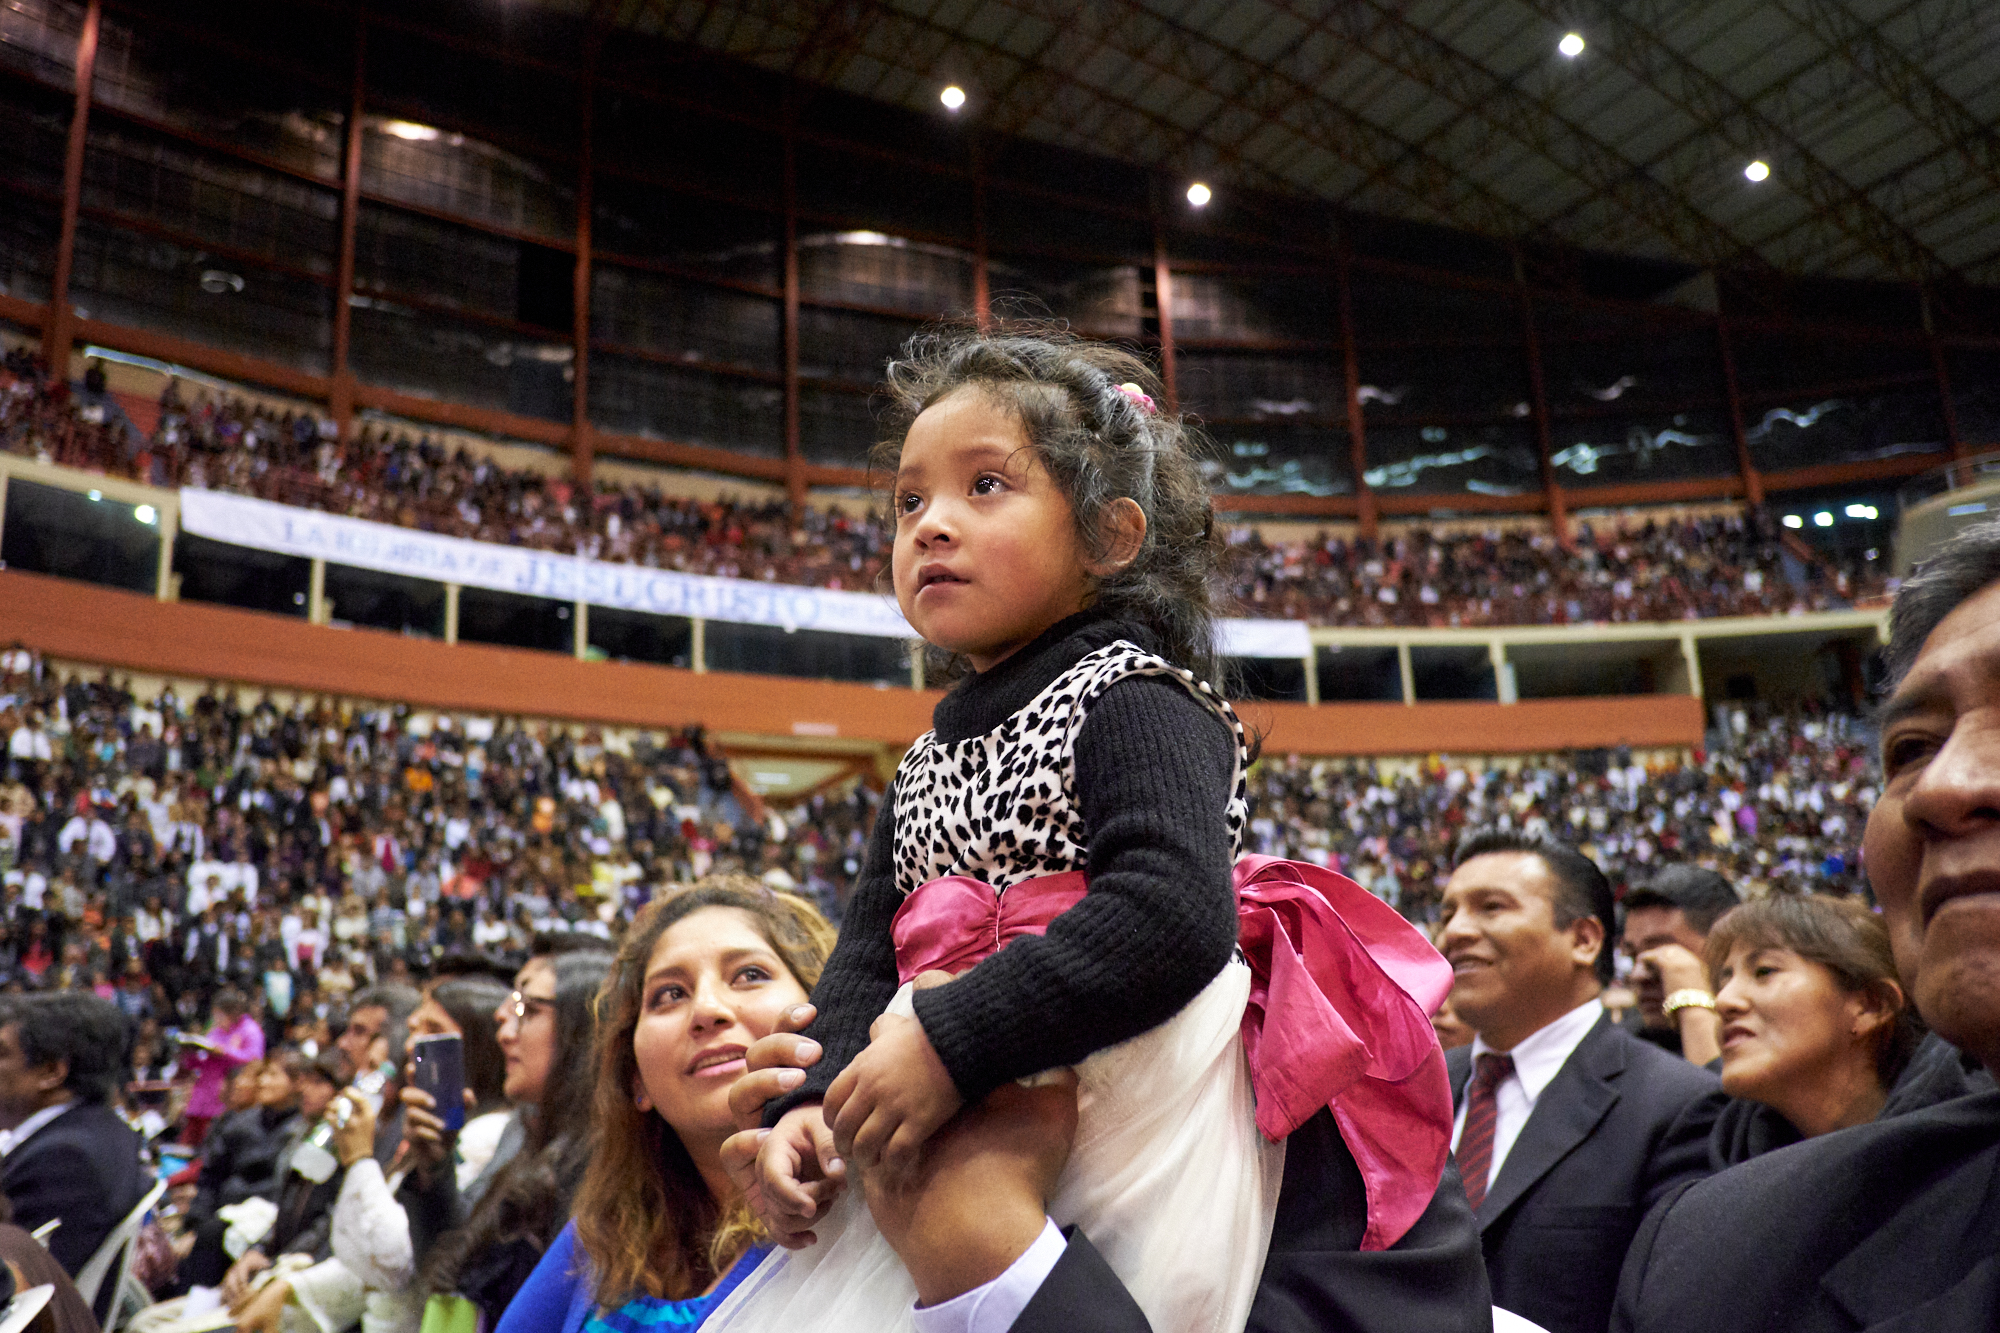 A dad gives his daughter a boost above the crowd to get a better look at President Russell M. Nelson, during a Sunday devotional in the Polideportivo Heroes de Octobre in El Alto, Bolivia, on Oct. 21, 2018.